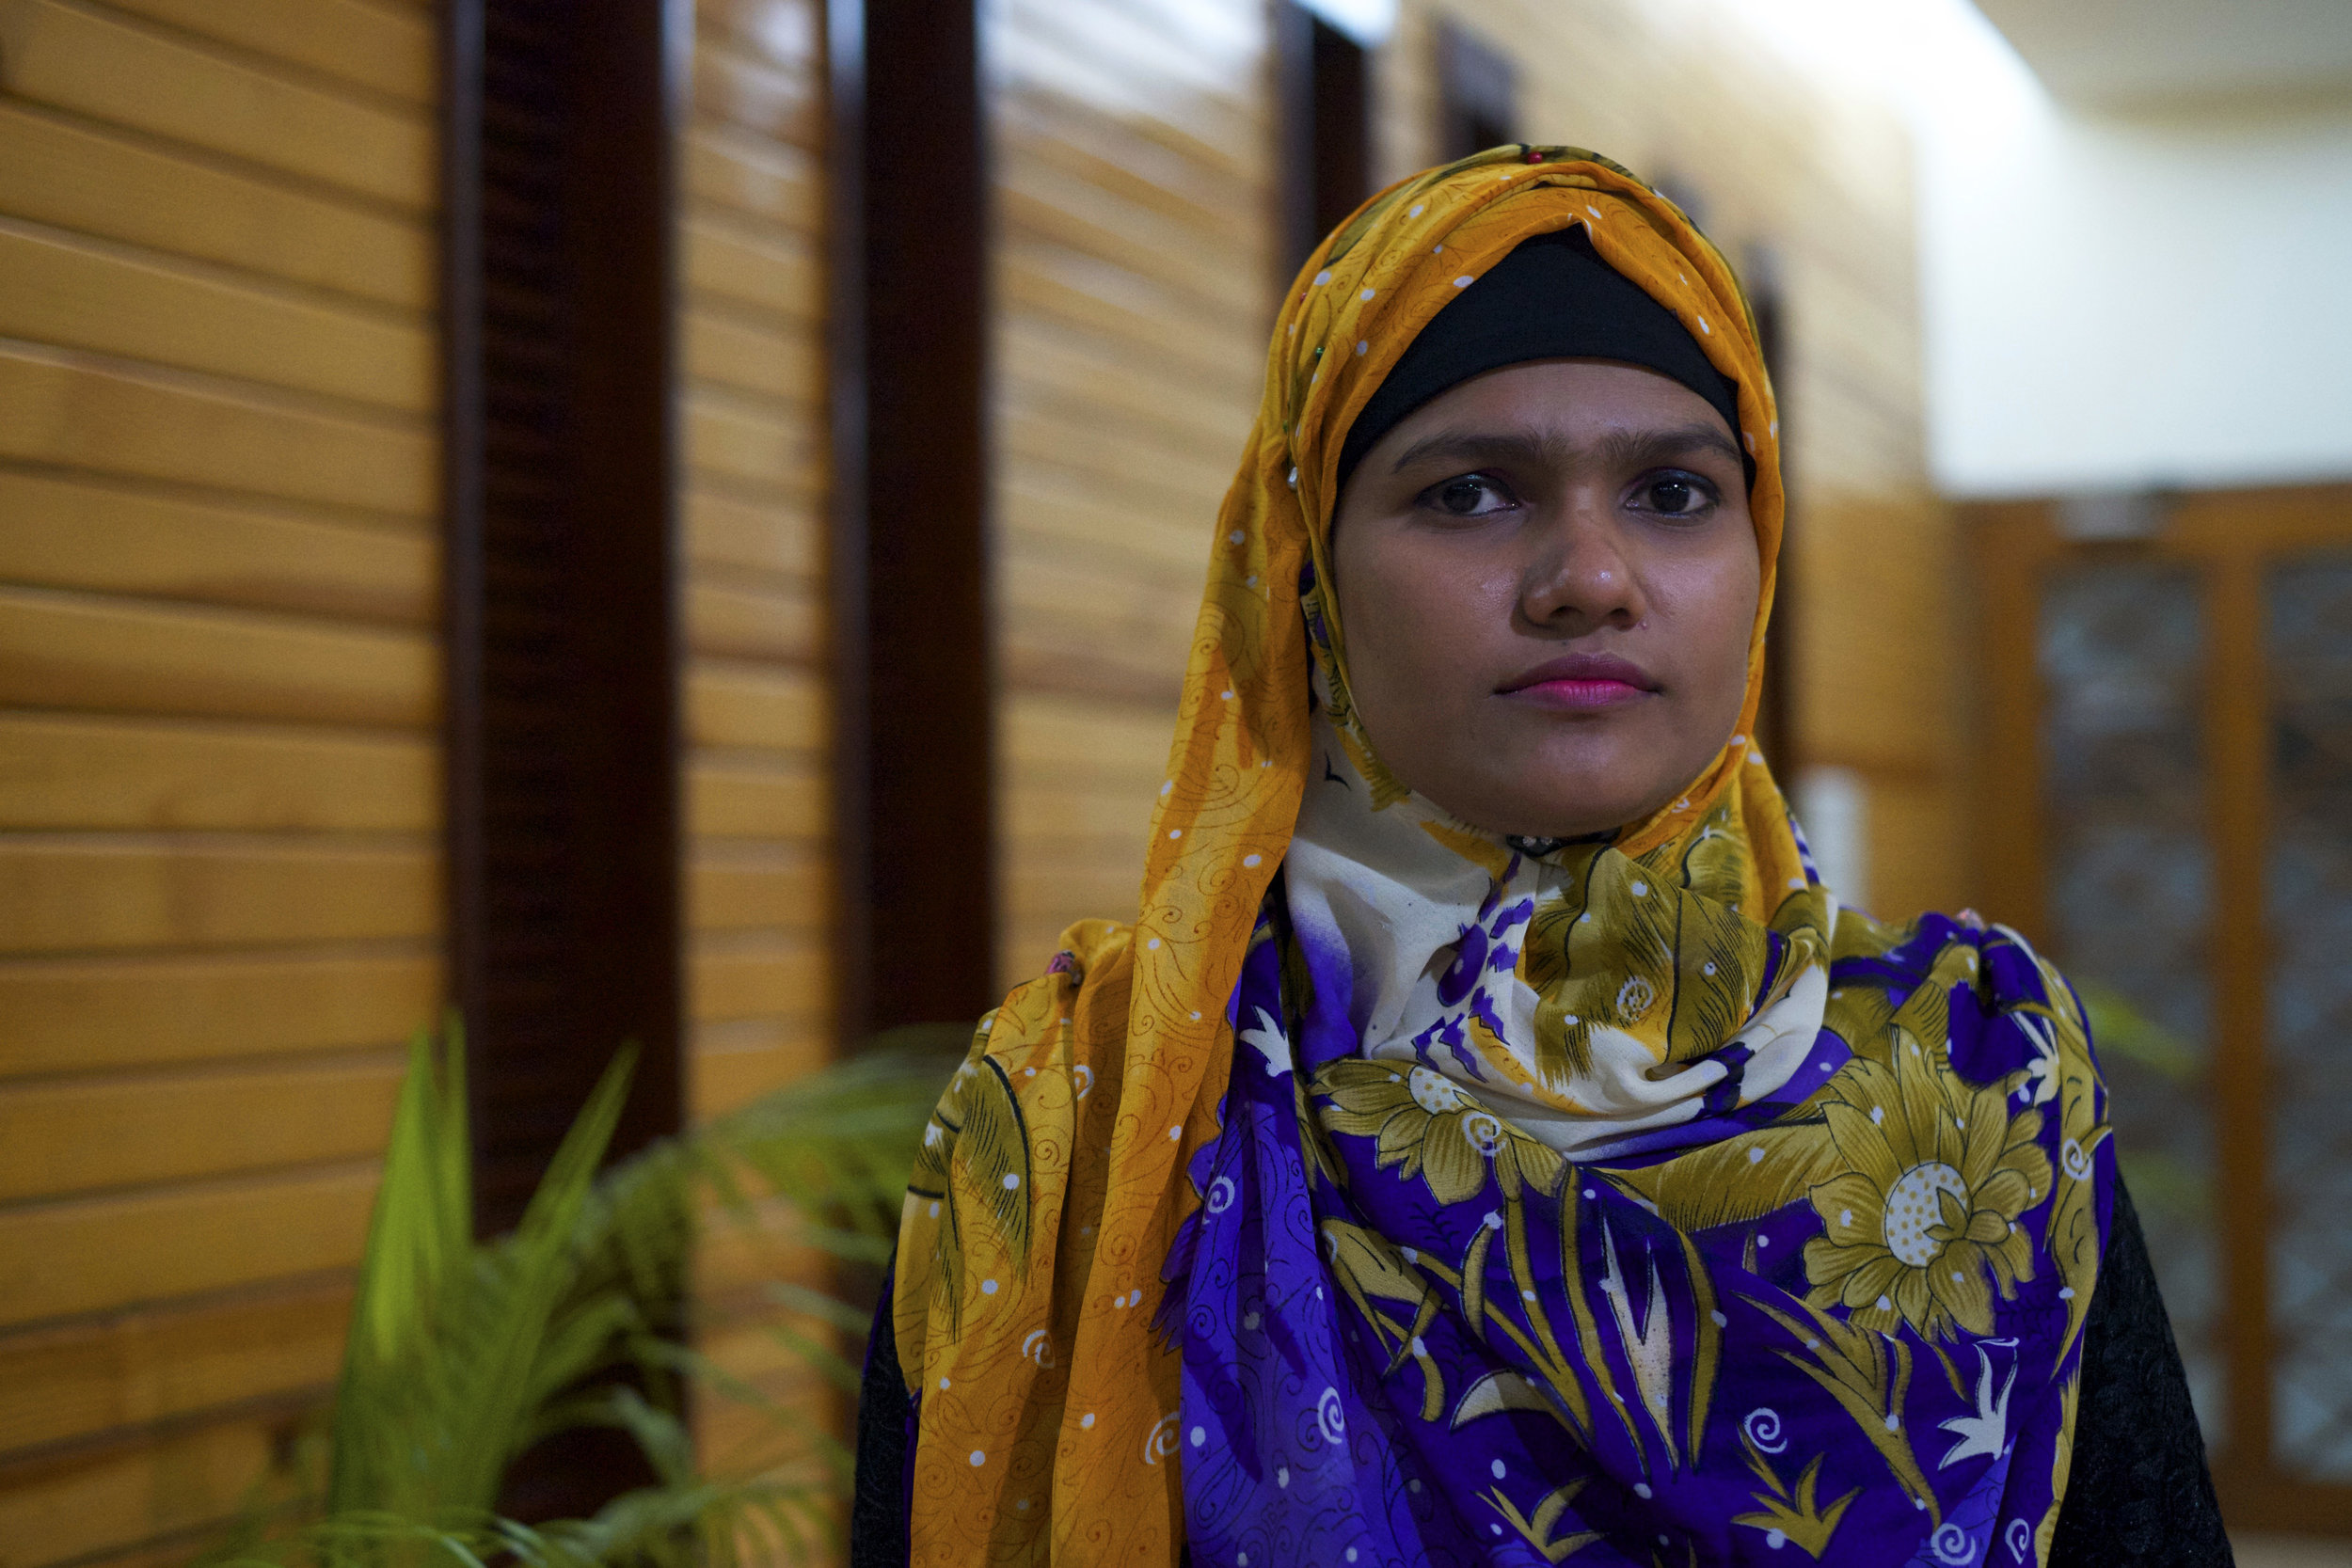 Jasmine Khatum, 21, is a Rohingya woman working in a garment factory in Chittagong as a thread cutter. She and her family fled persecution in Myanmar in 2012, after one of their relatives was beaten to death. (Credit: Dene-Hern Chen